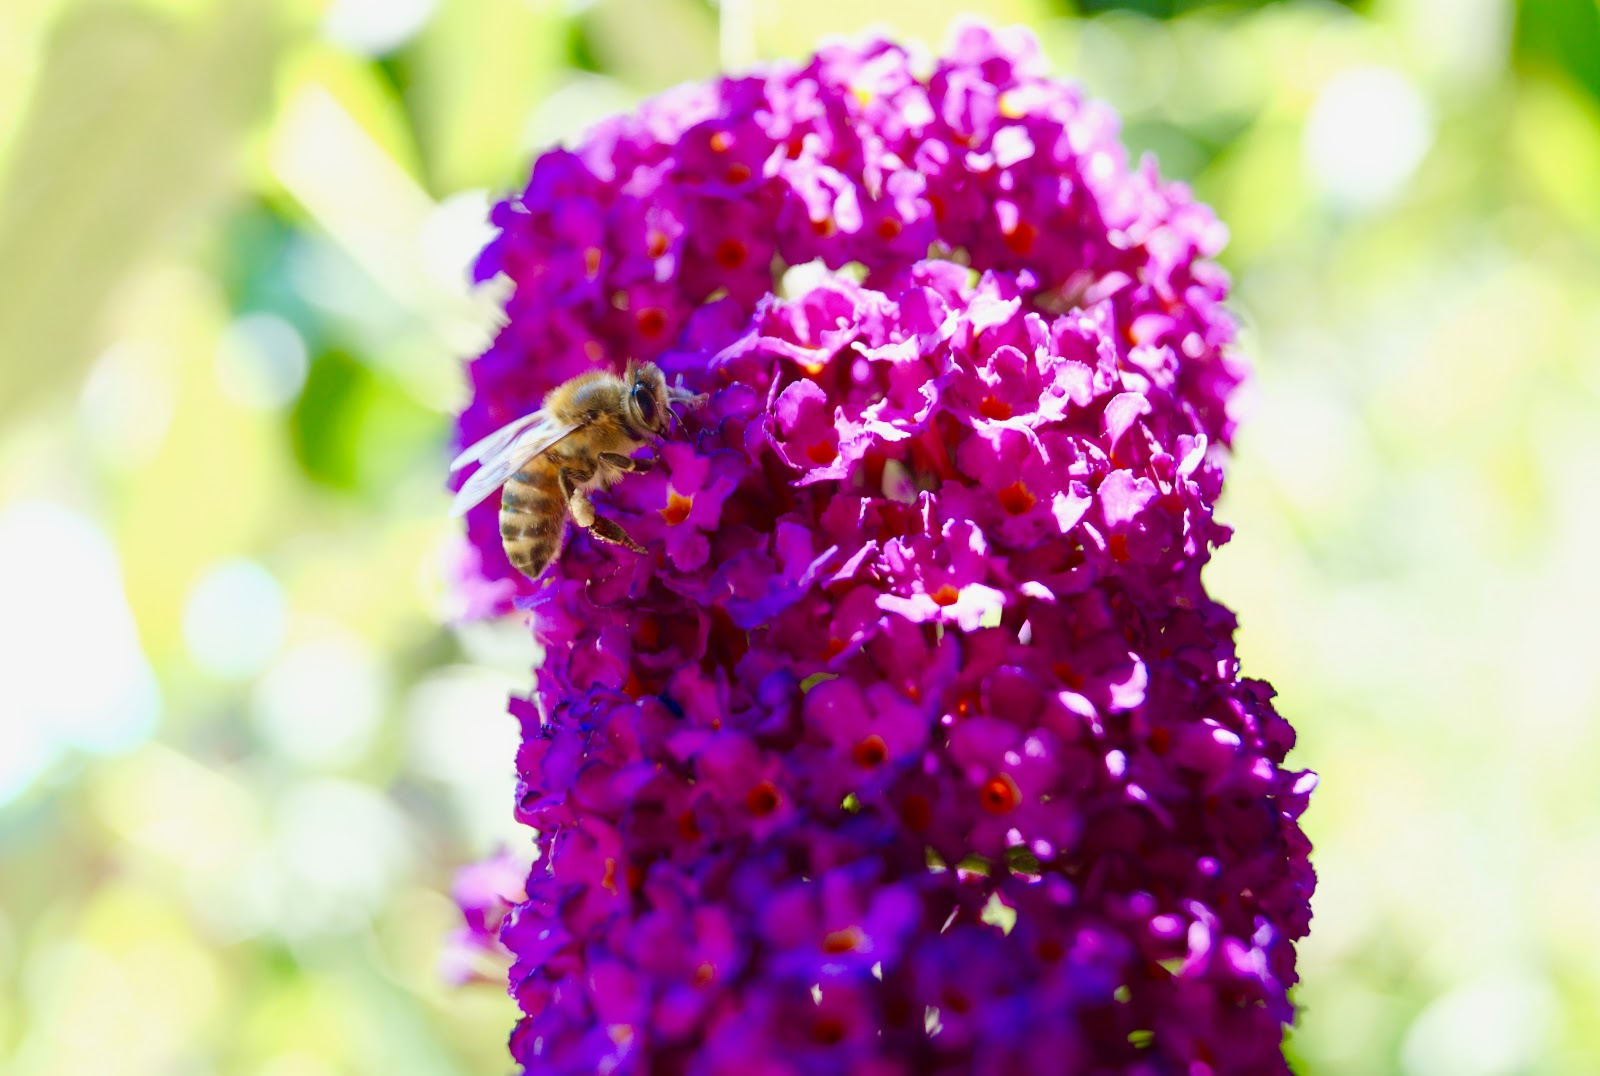 spring flower in bloom with bee